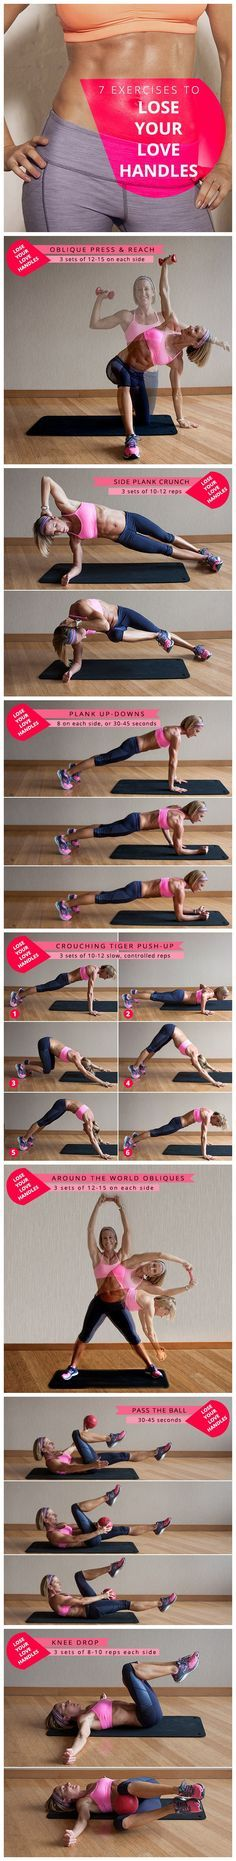 How To Lose Love Handles